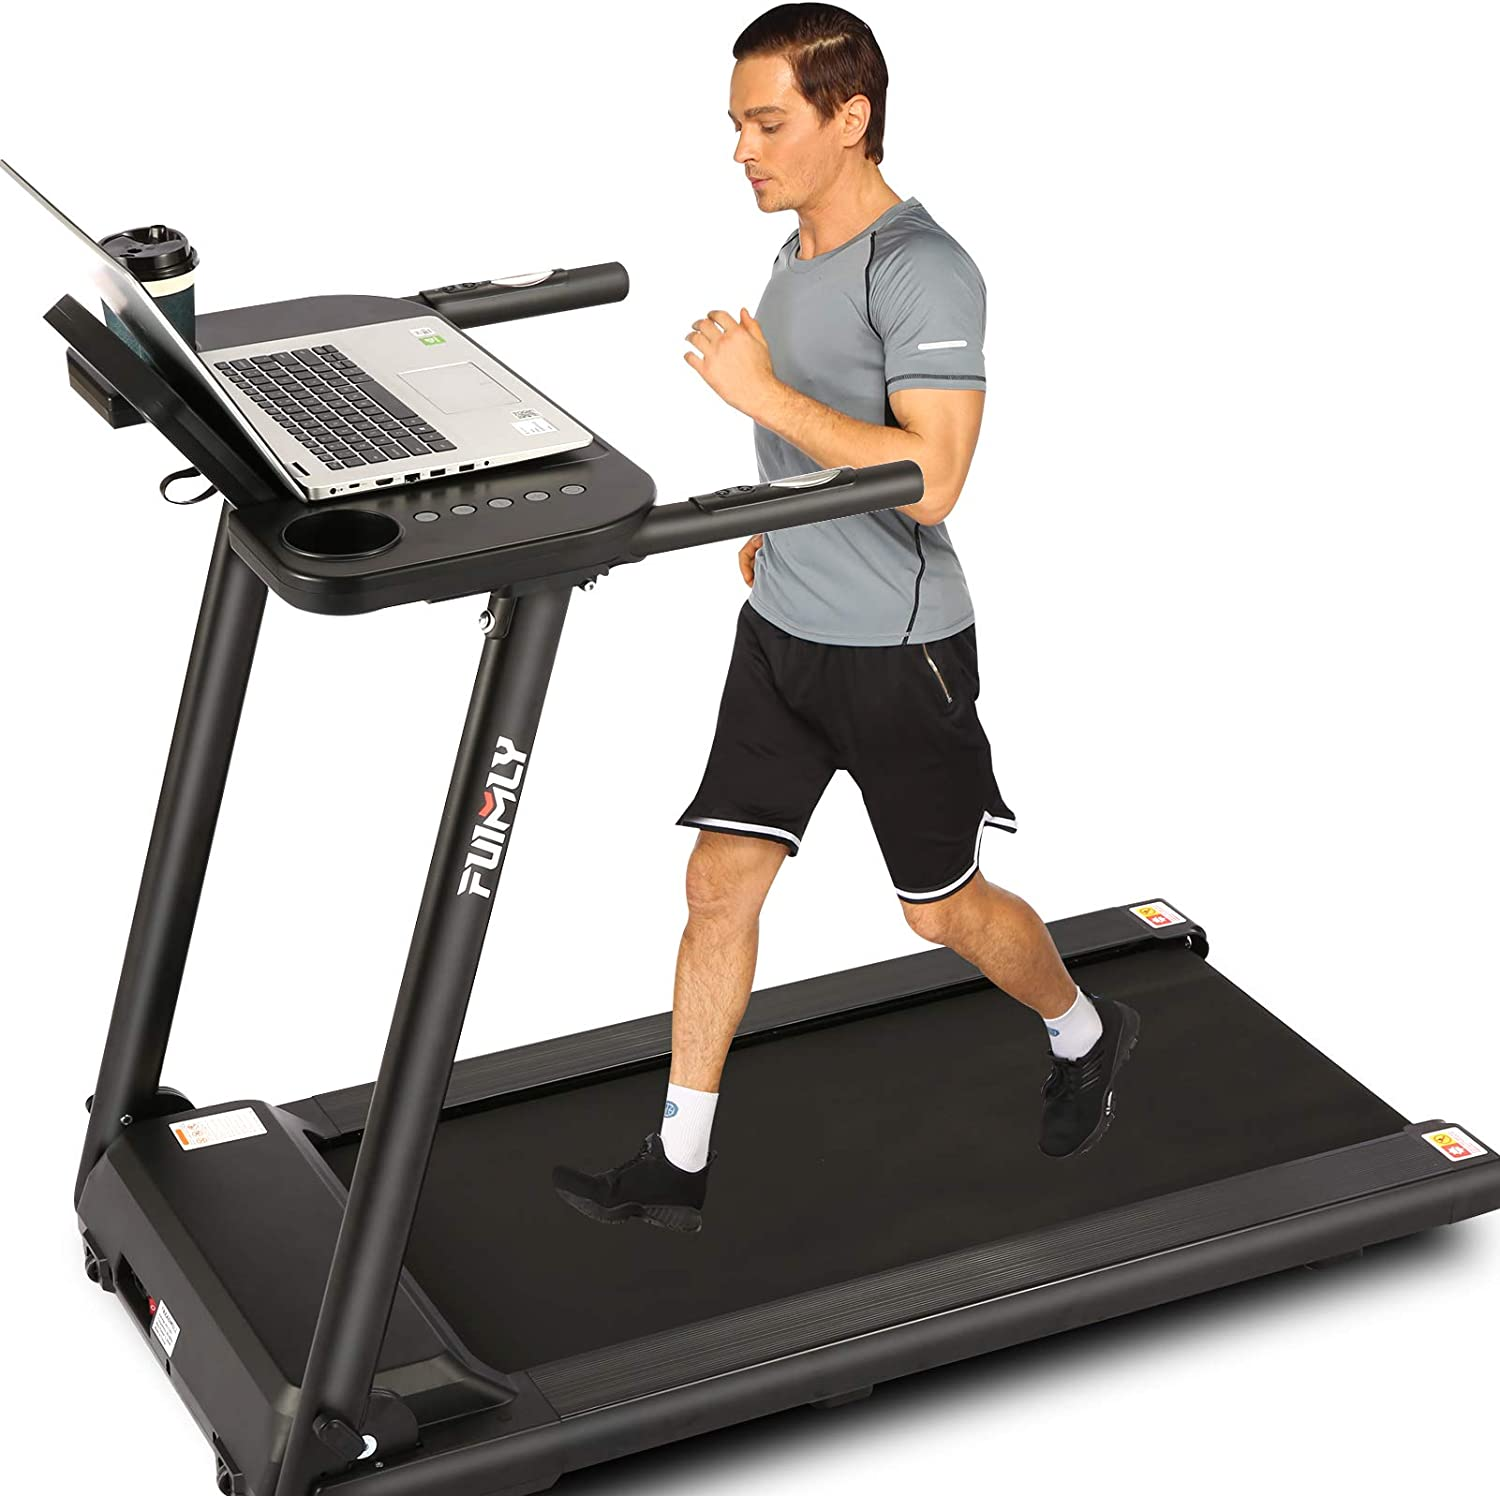 Portable Electric Treadmill Machine for Running Walking Jogging Workout 265 LBS Weight Capacity Folding Treadmills for Home with Desk and Bluetooth Speaker FUNMILY Treadmill